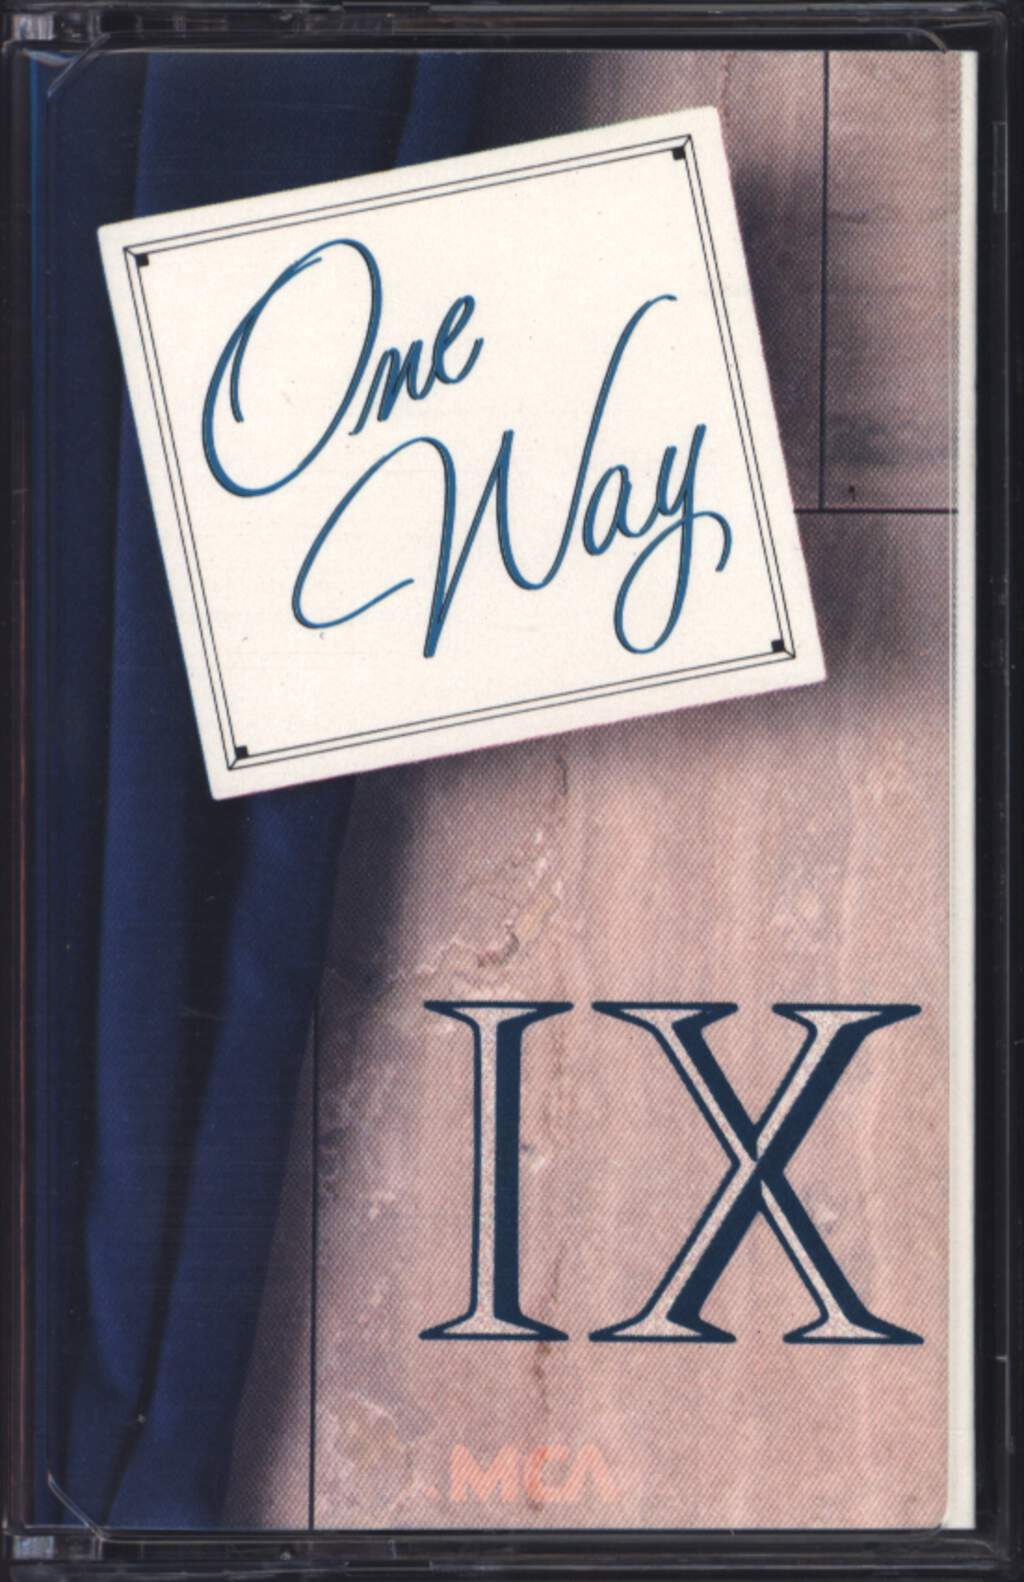 One Way: IX, Compact Cassette